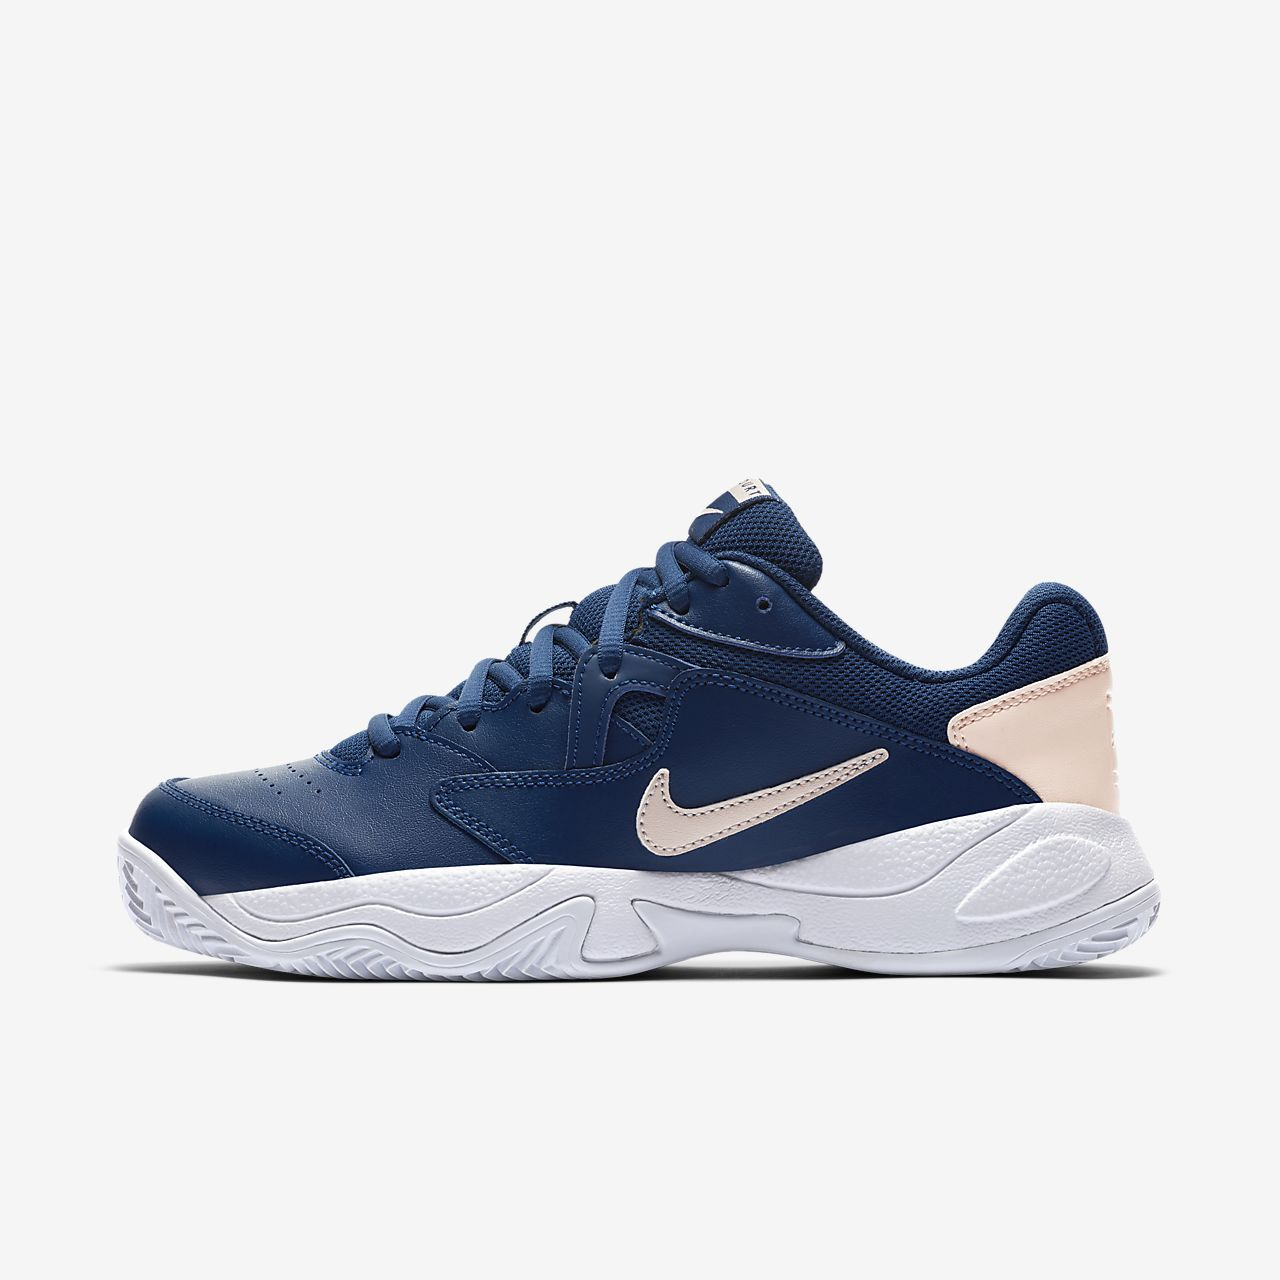 Blu Nike Zoom Cage 2 Clay scarpe tennis Uomo Outlet